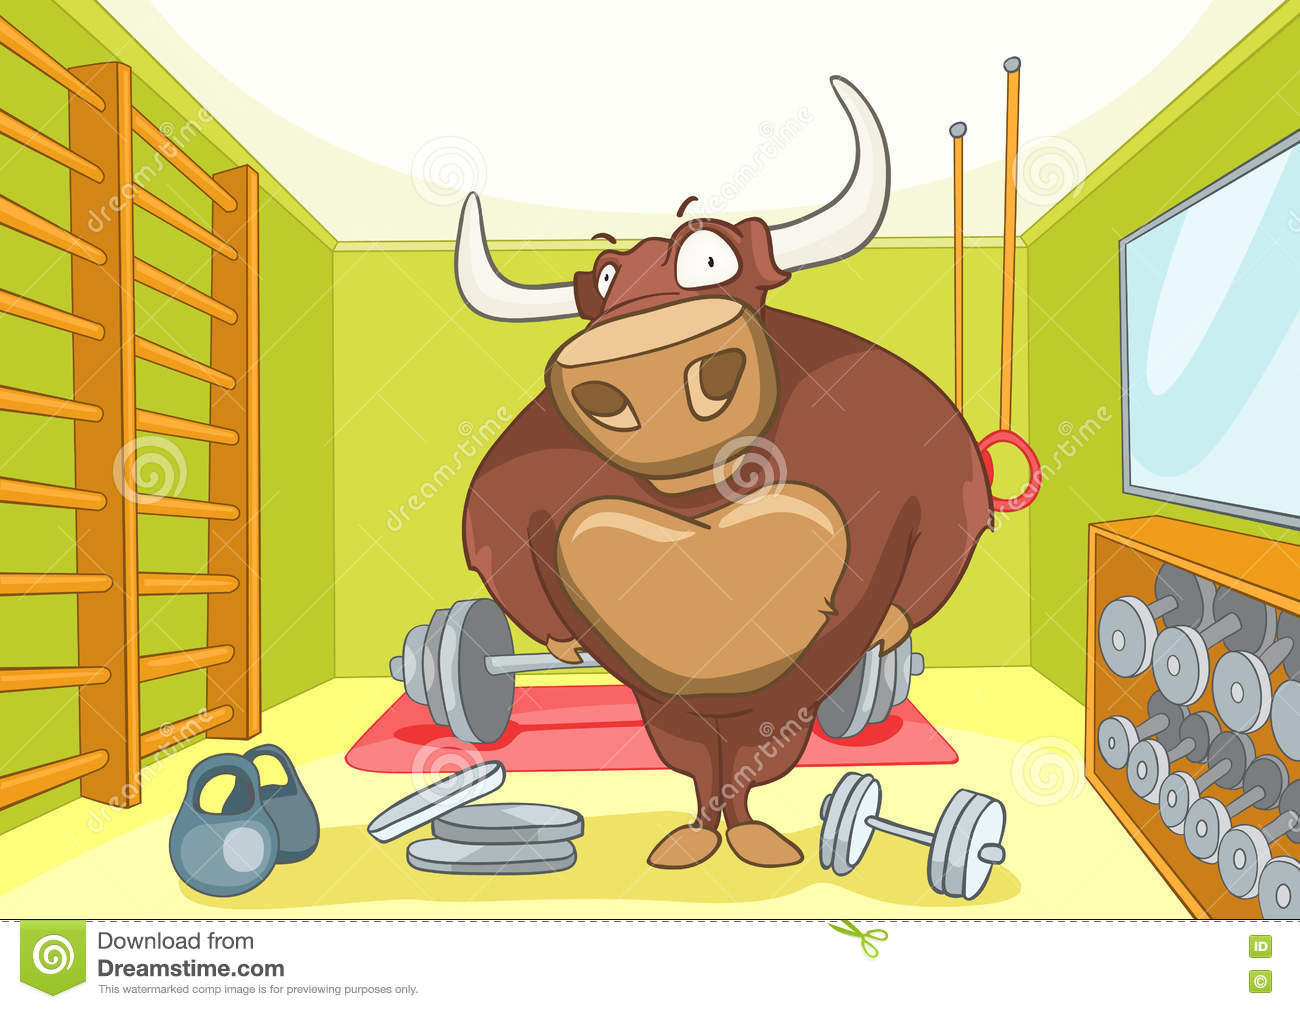 Cartoon background of gym room royalty free stock